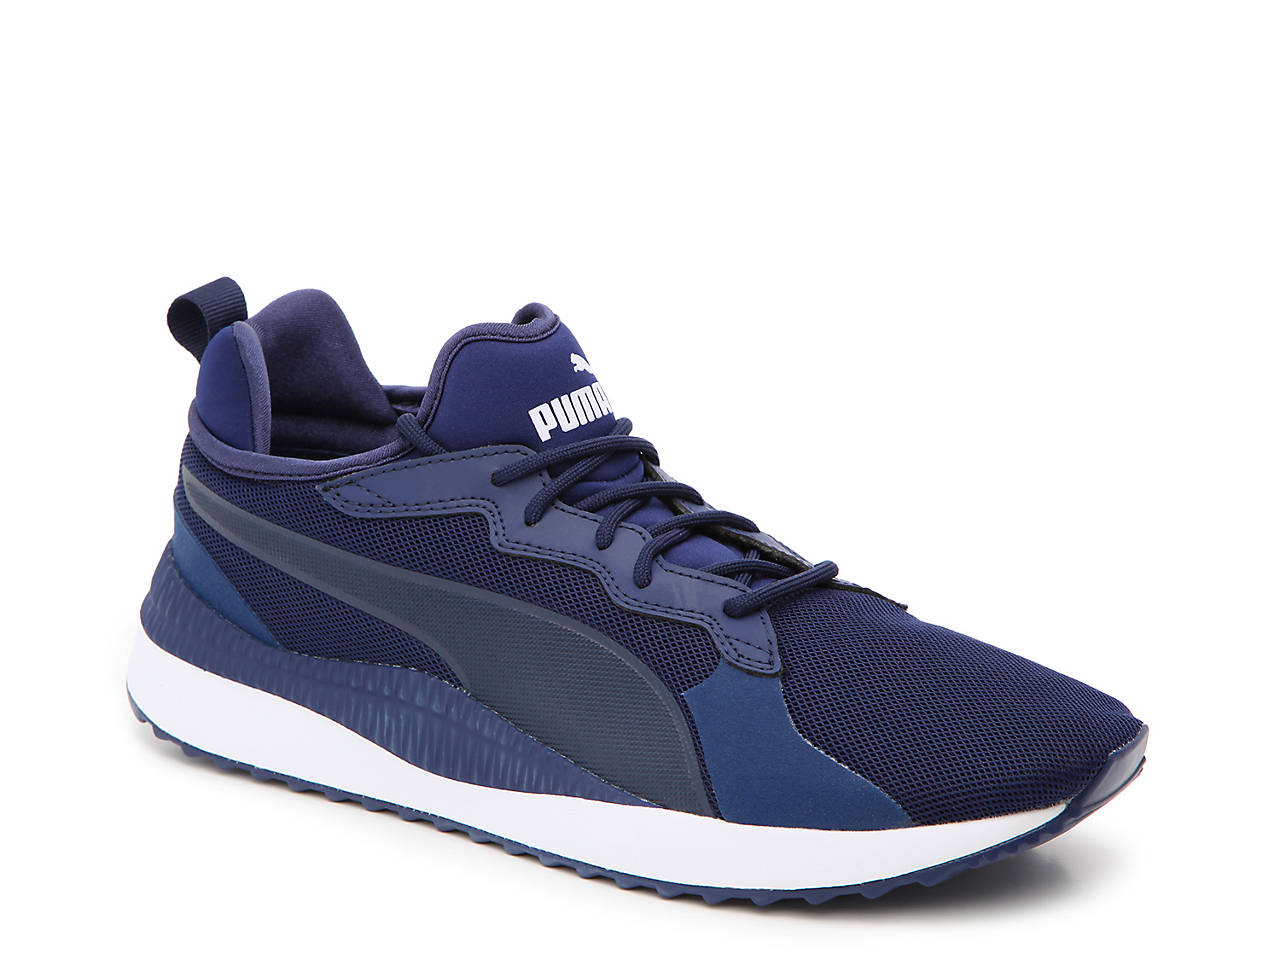 09a886fb1a06 Puma Pacer Next Sneaker - Men s Men s Shoes